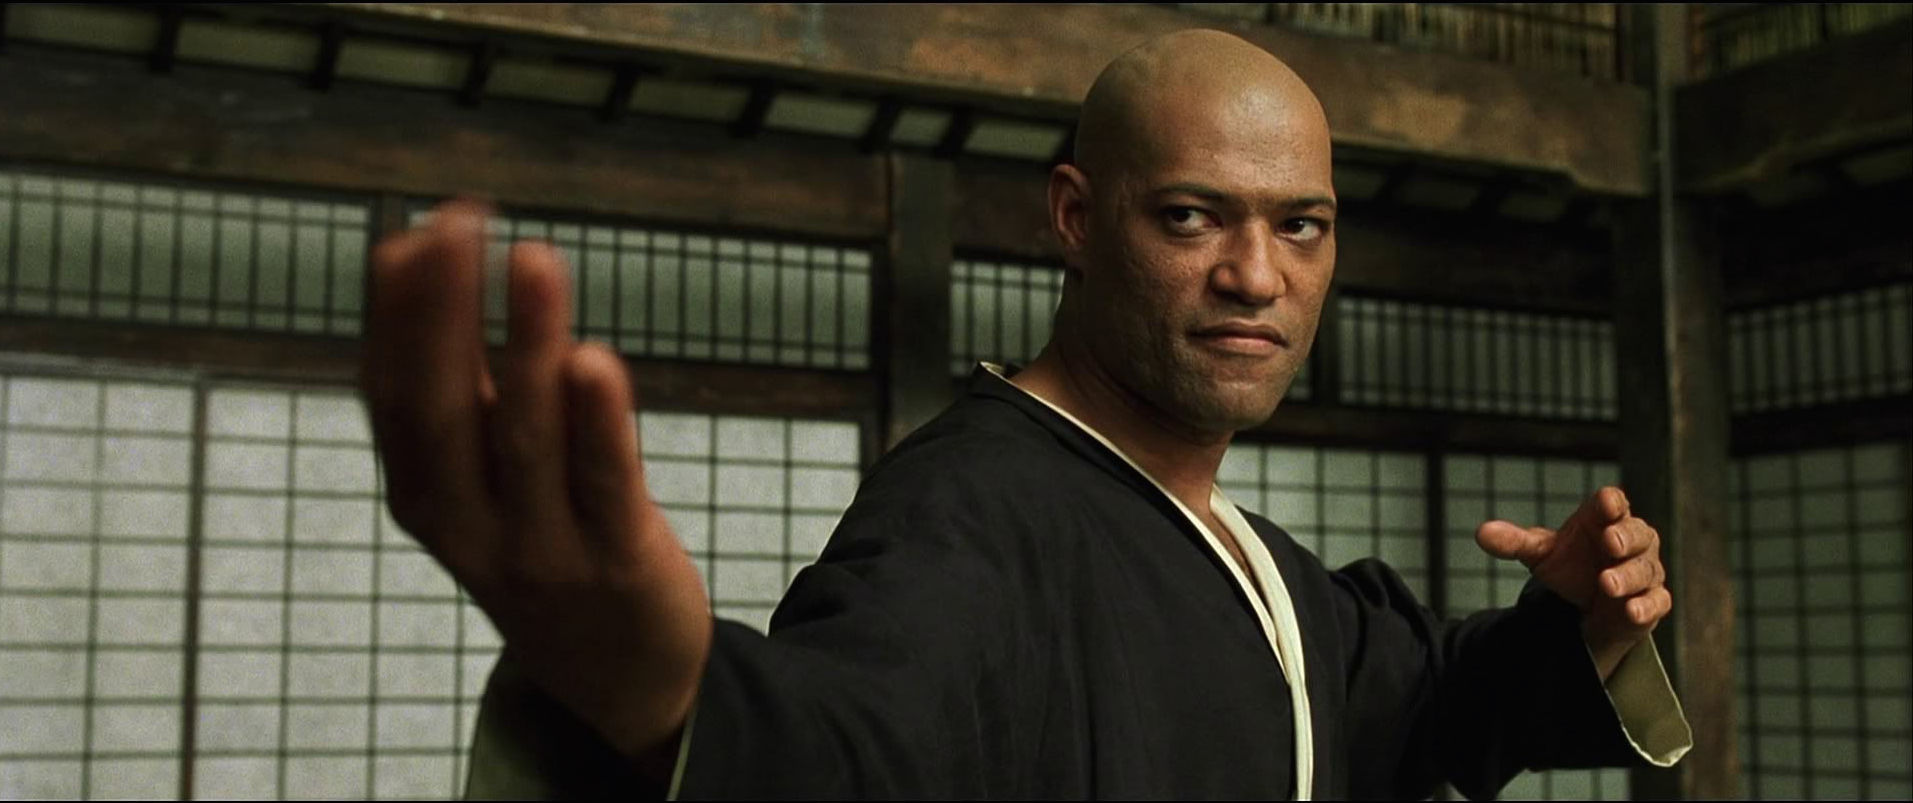 laurence-fishburne-as-morpheus.jpg